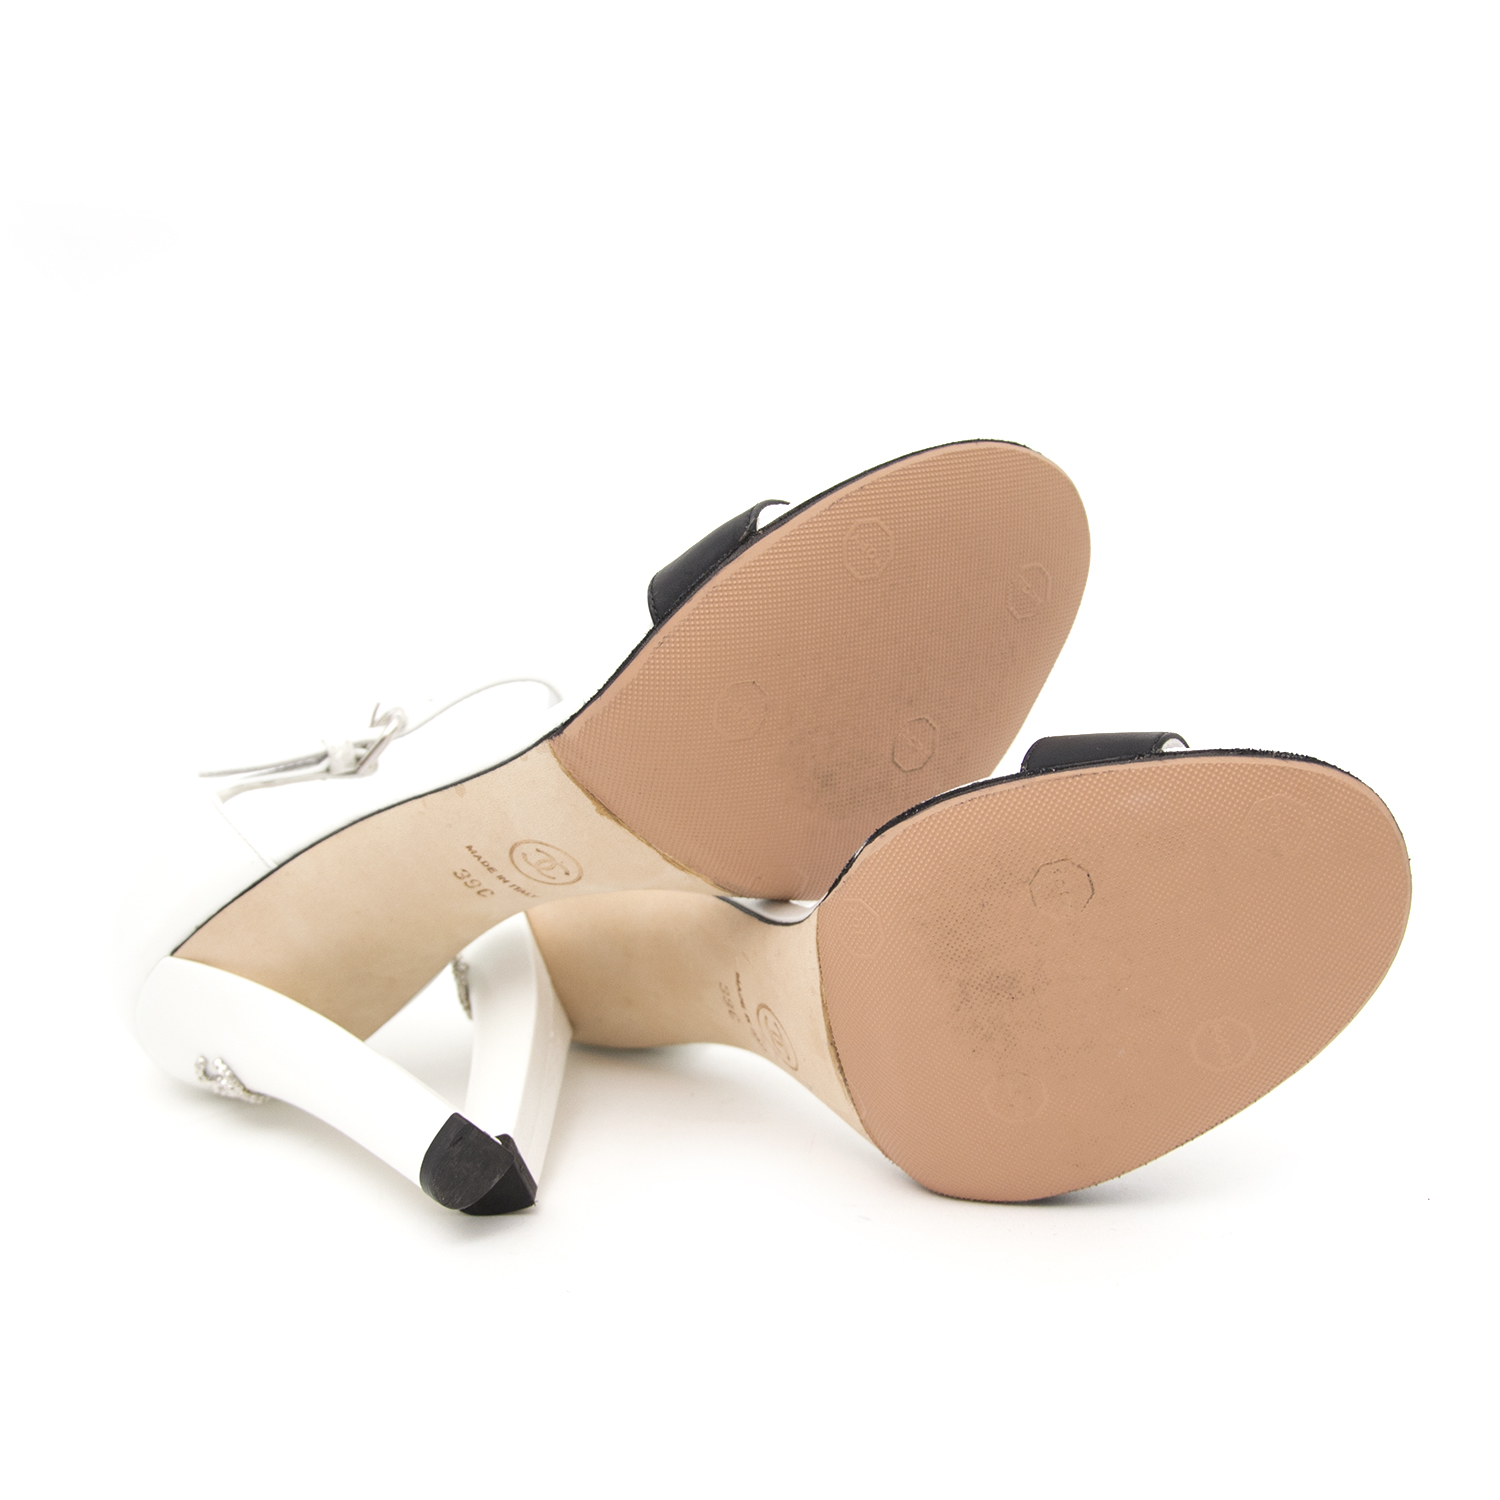 Vintage Chanel white heels for the best price at Labellov webshop. Safe and secure online shopping with 100% authenticity. Vintage Chanel blanc talons pour le meilleur prix.